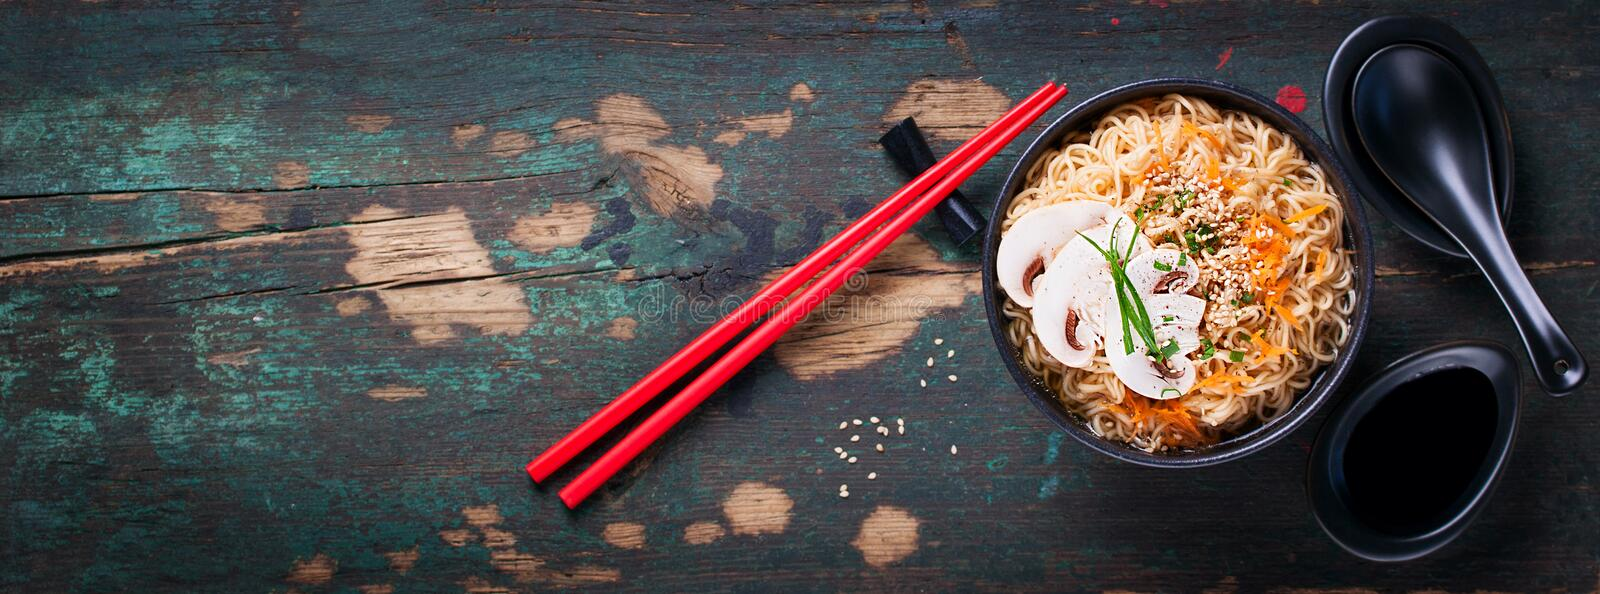 Asian noodles with vegetables and mushrooms, soy sauce, sticks on a dark background royalty free stock photo